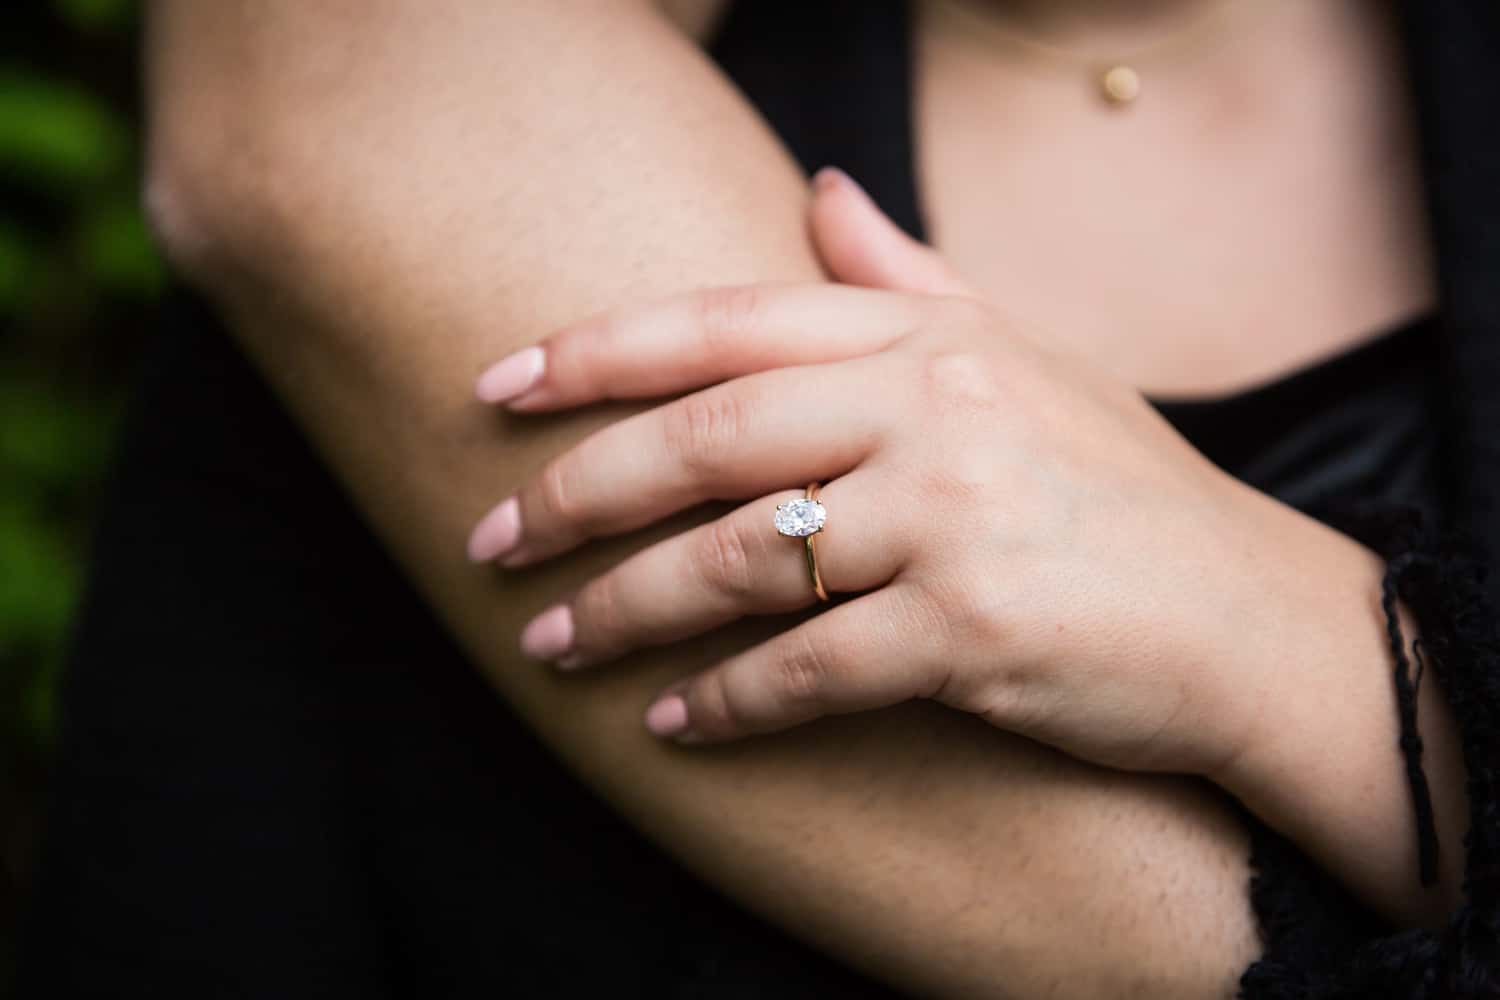 Close up of woman's hand with engagement ring resting on man's arm